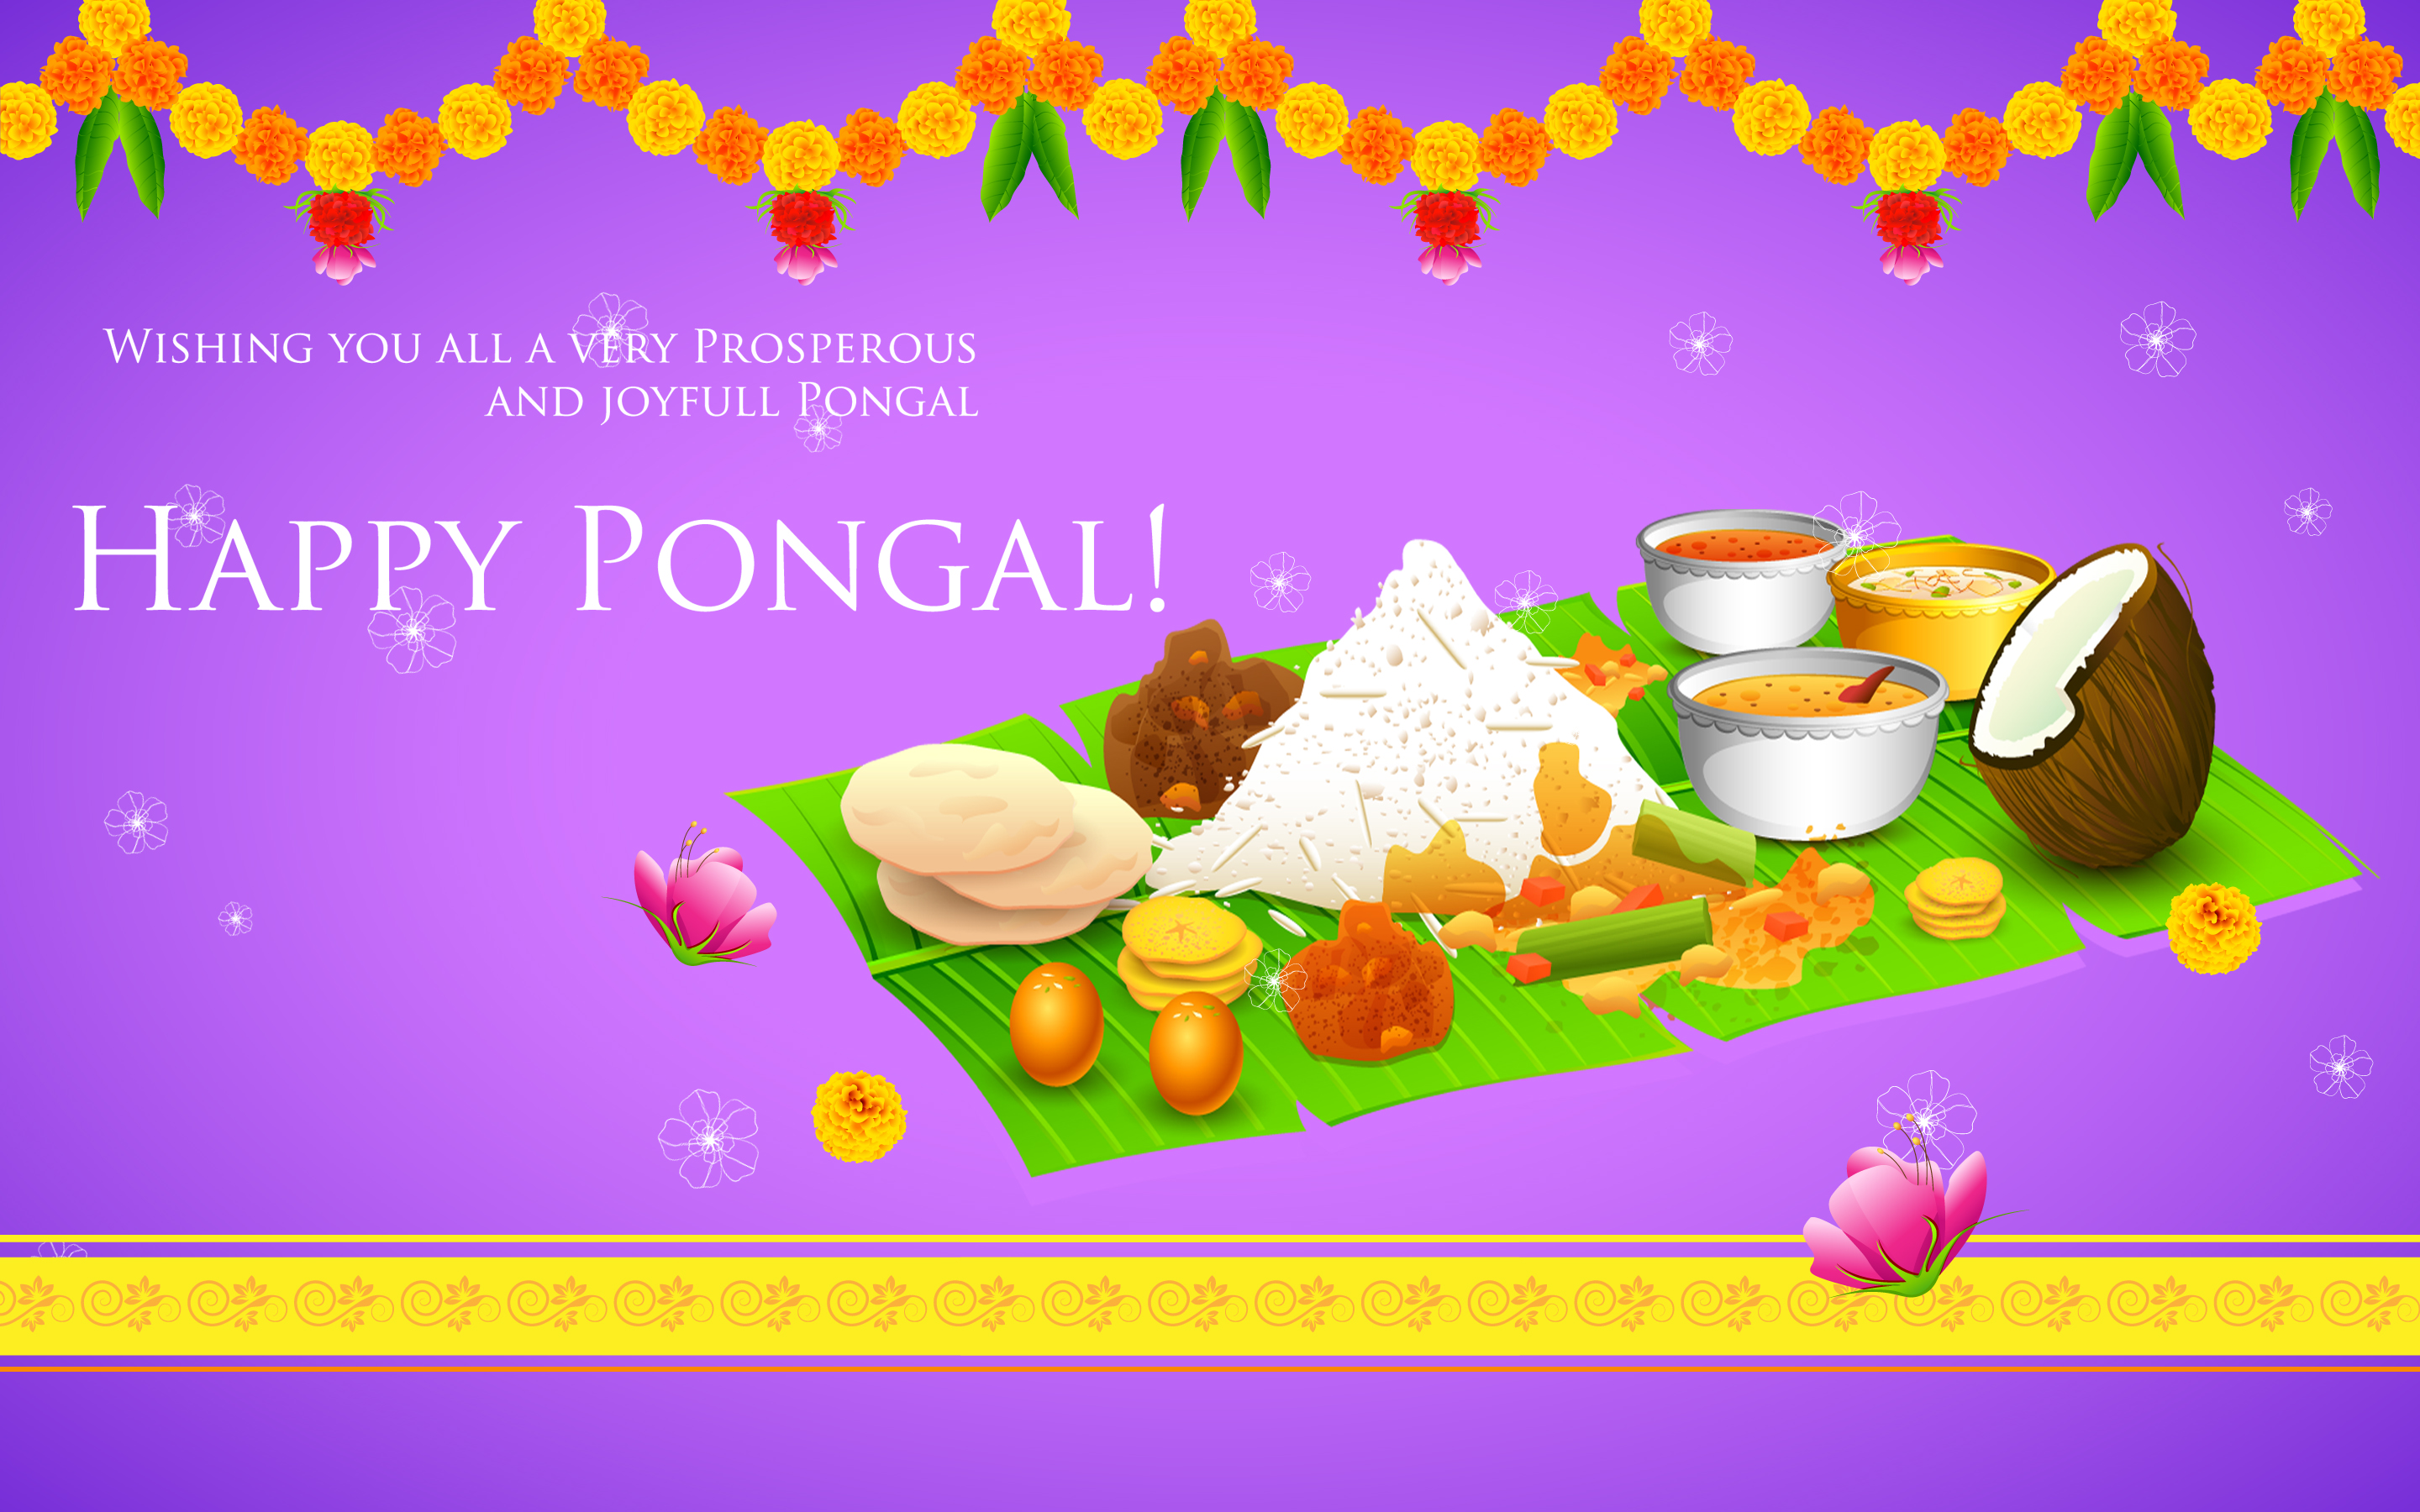 Real Hd Wallpapers 1080p Happy Pongal Wallpapers Pictures Images Free Download